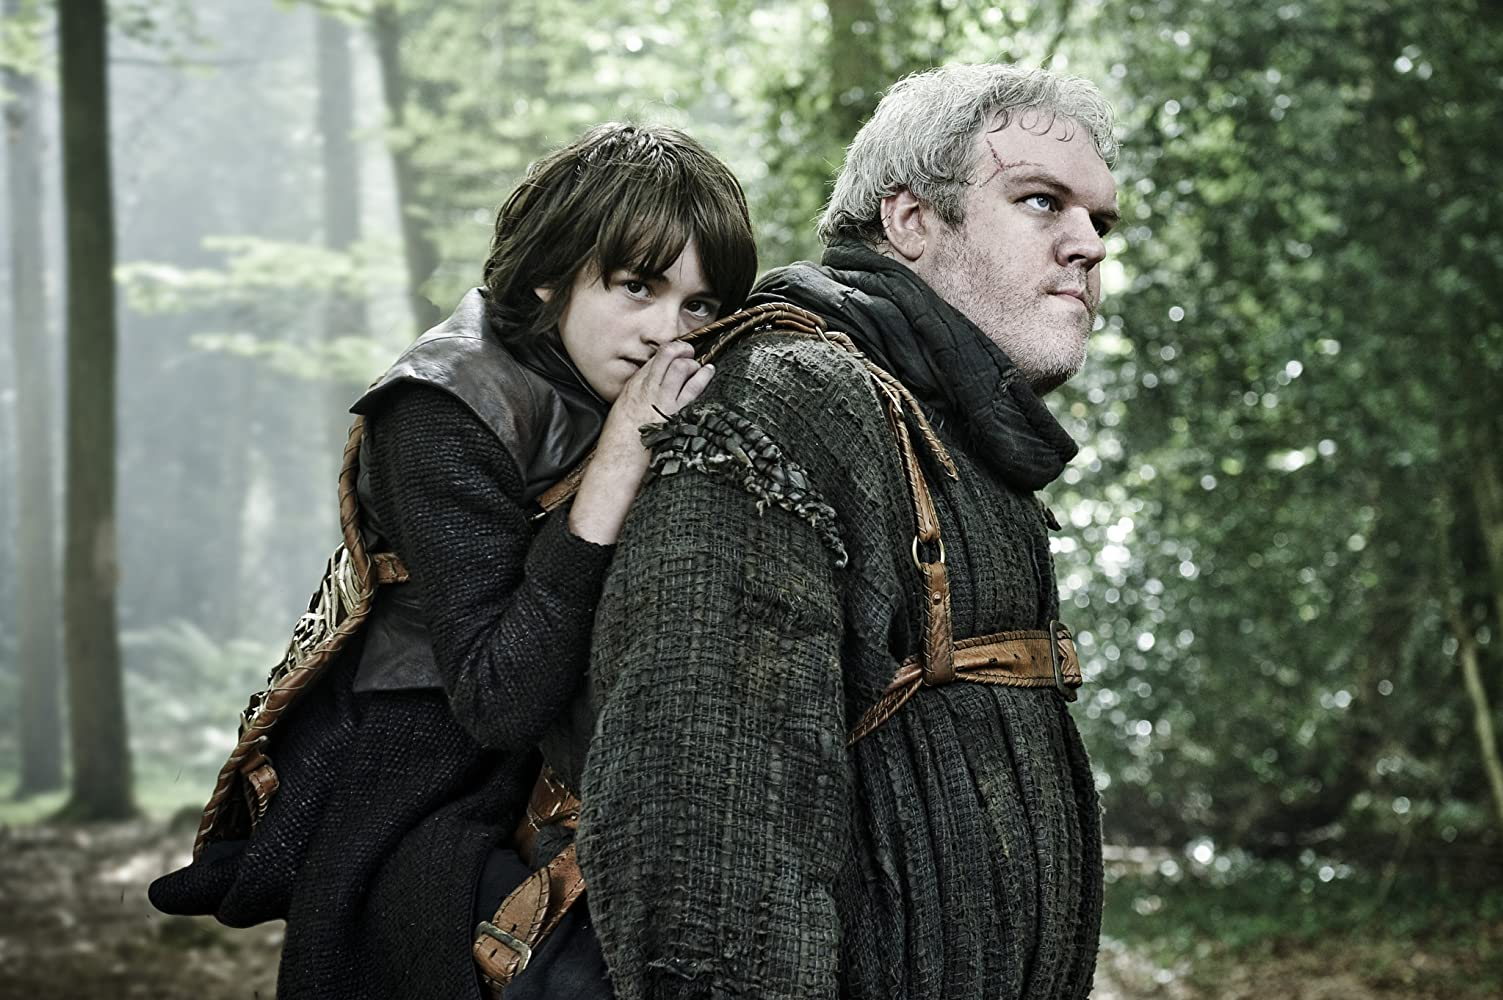 Isaac Hempstead Wright and Kristian Nairn in Game of Thrones (2011)